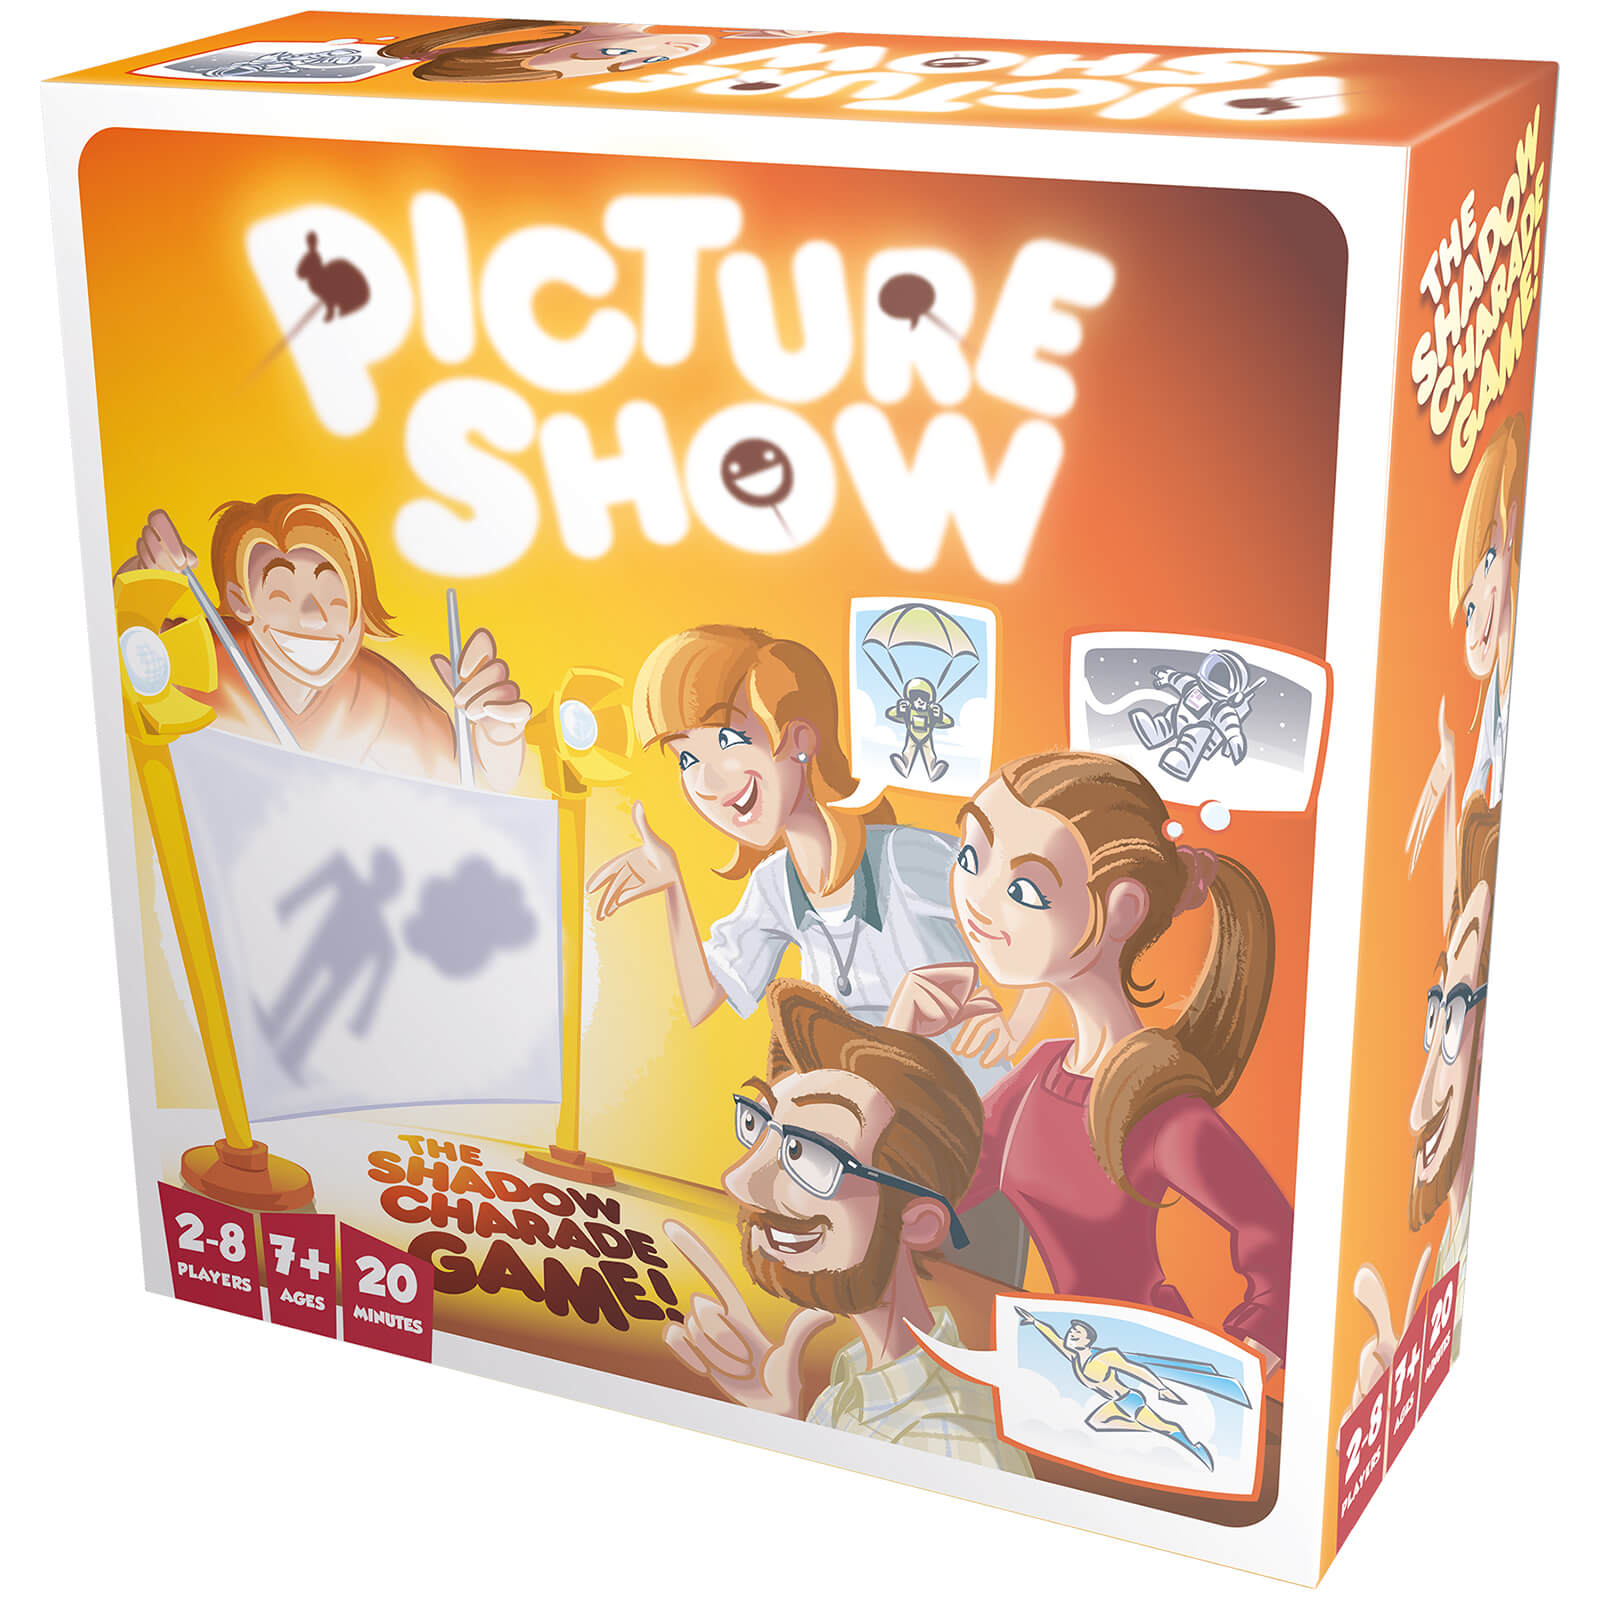 Image of Picture Show Party Game